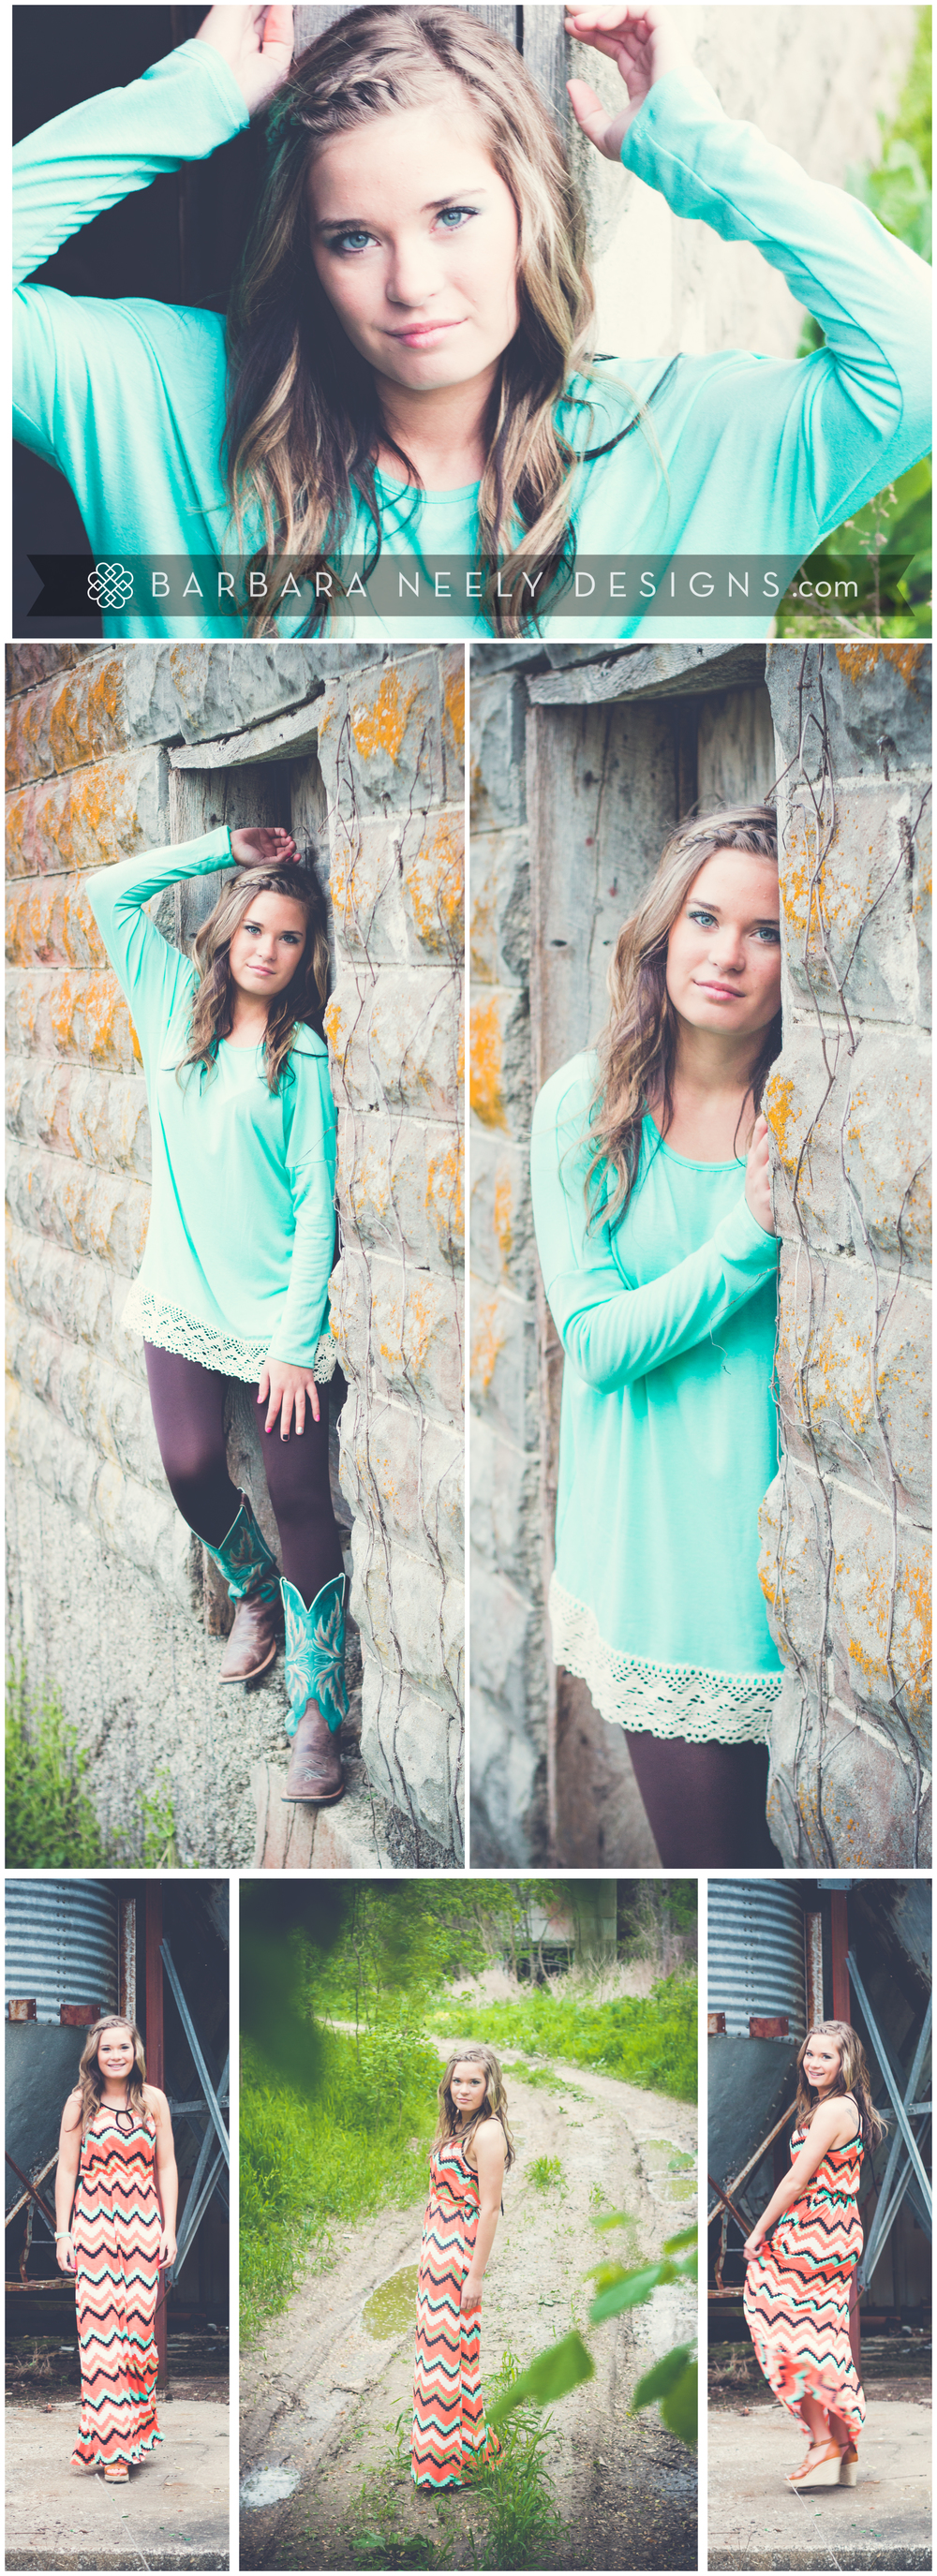 Best Country Senior Photos in Missouri - Mandy Senior 2015 E